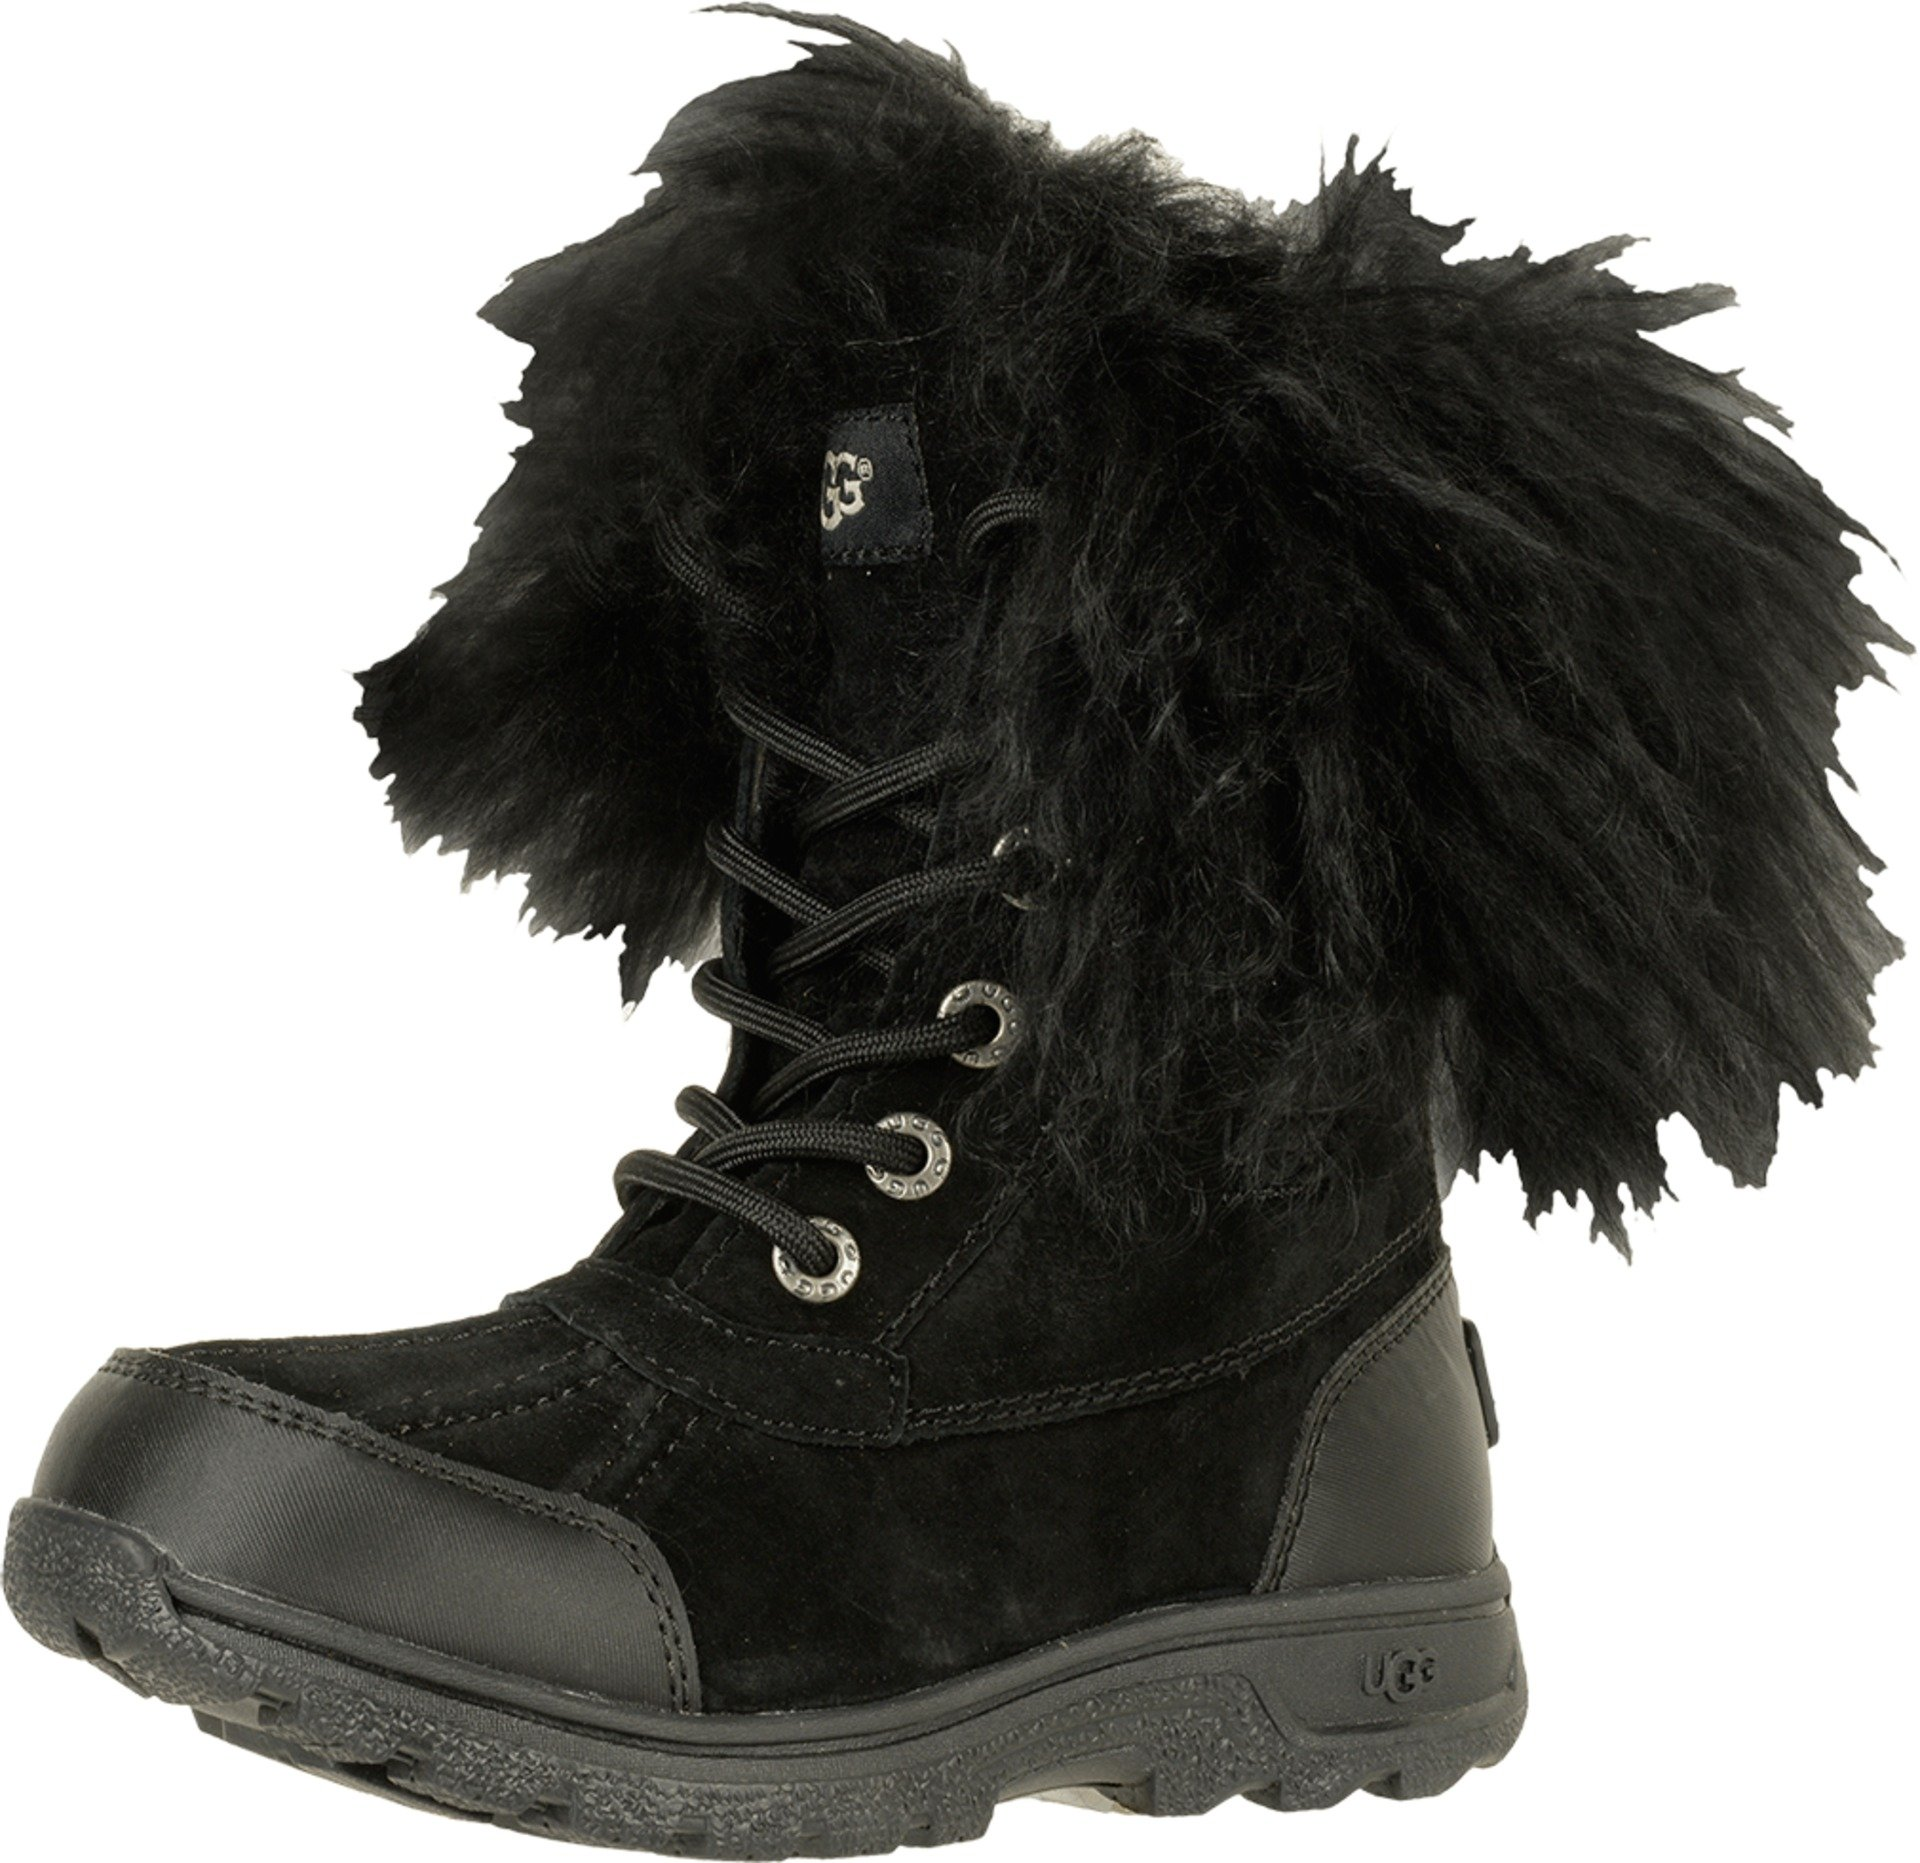 11594c02ba1 UGG Big Kids Butte II Fluff Boot Black Size 6 Big Kid M